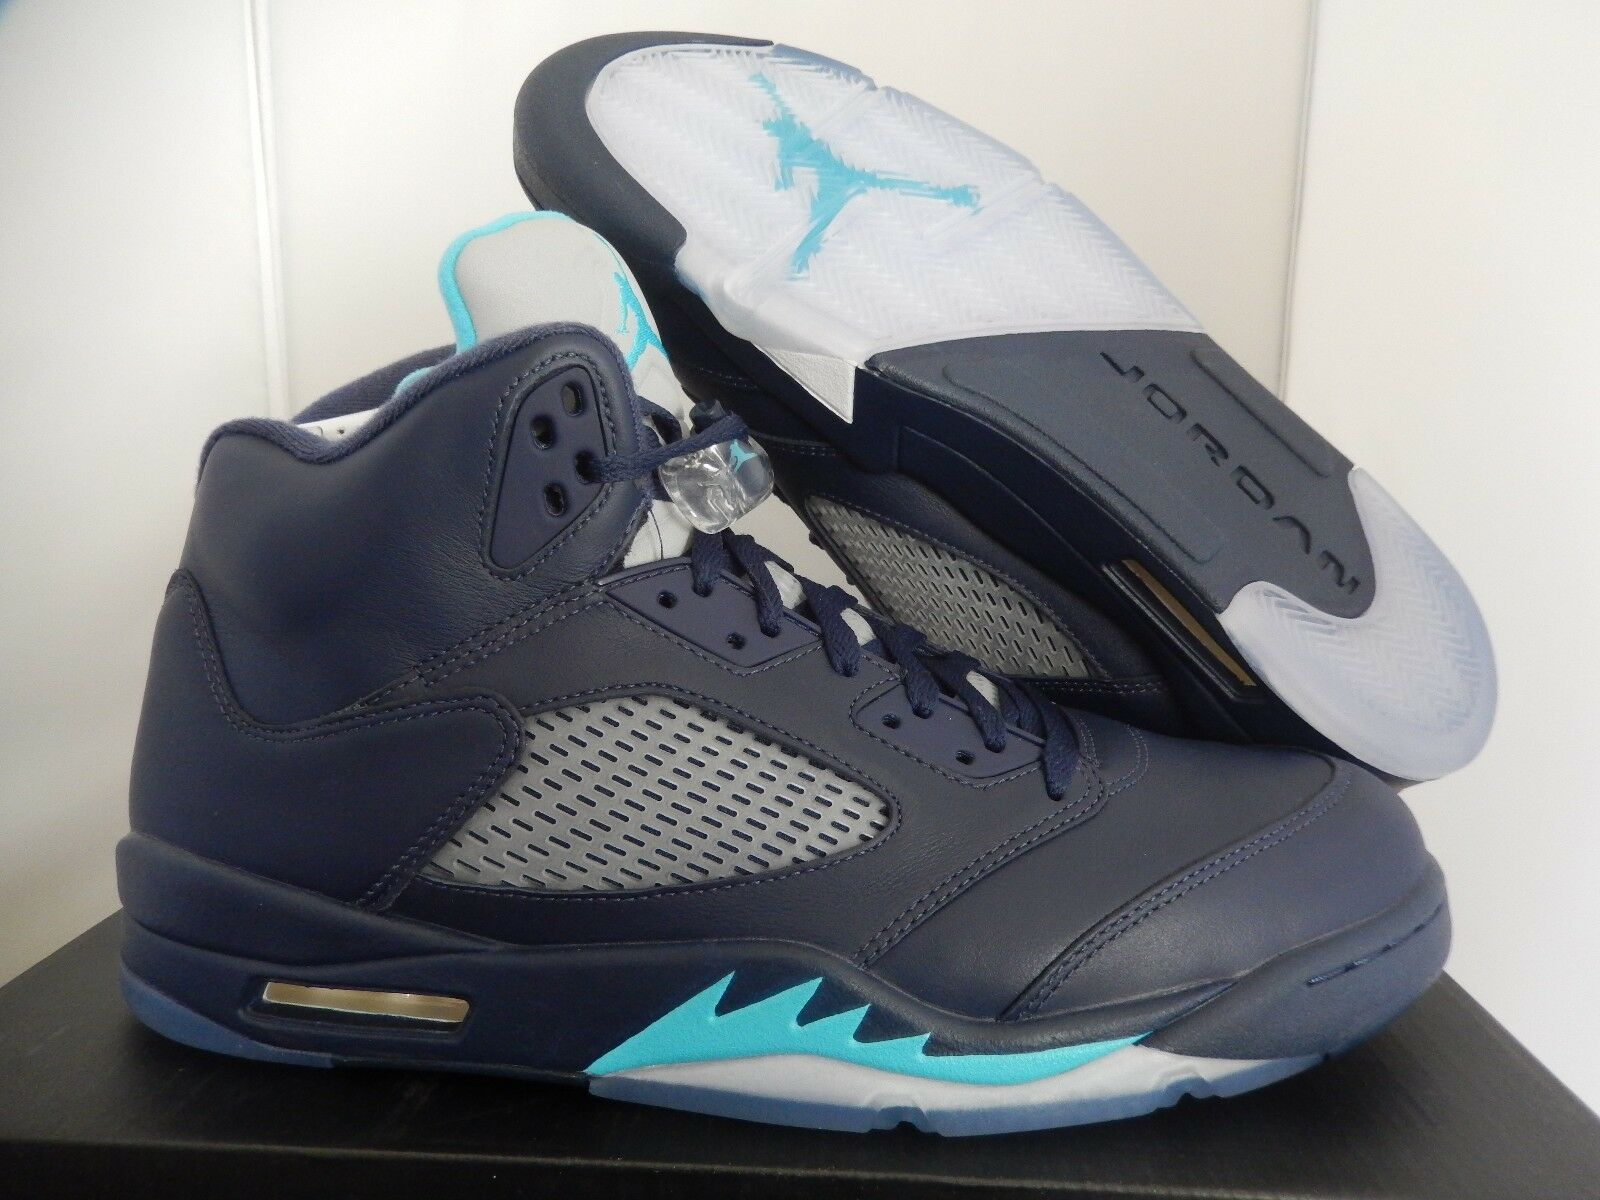 newest 73195 dc2f4 NIKE NIKE NIKE AIR JORDAN 5 RETRO MIDNIGHT NAVY blueE-WHITE SZ 14  136027